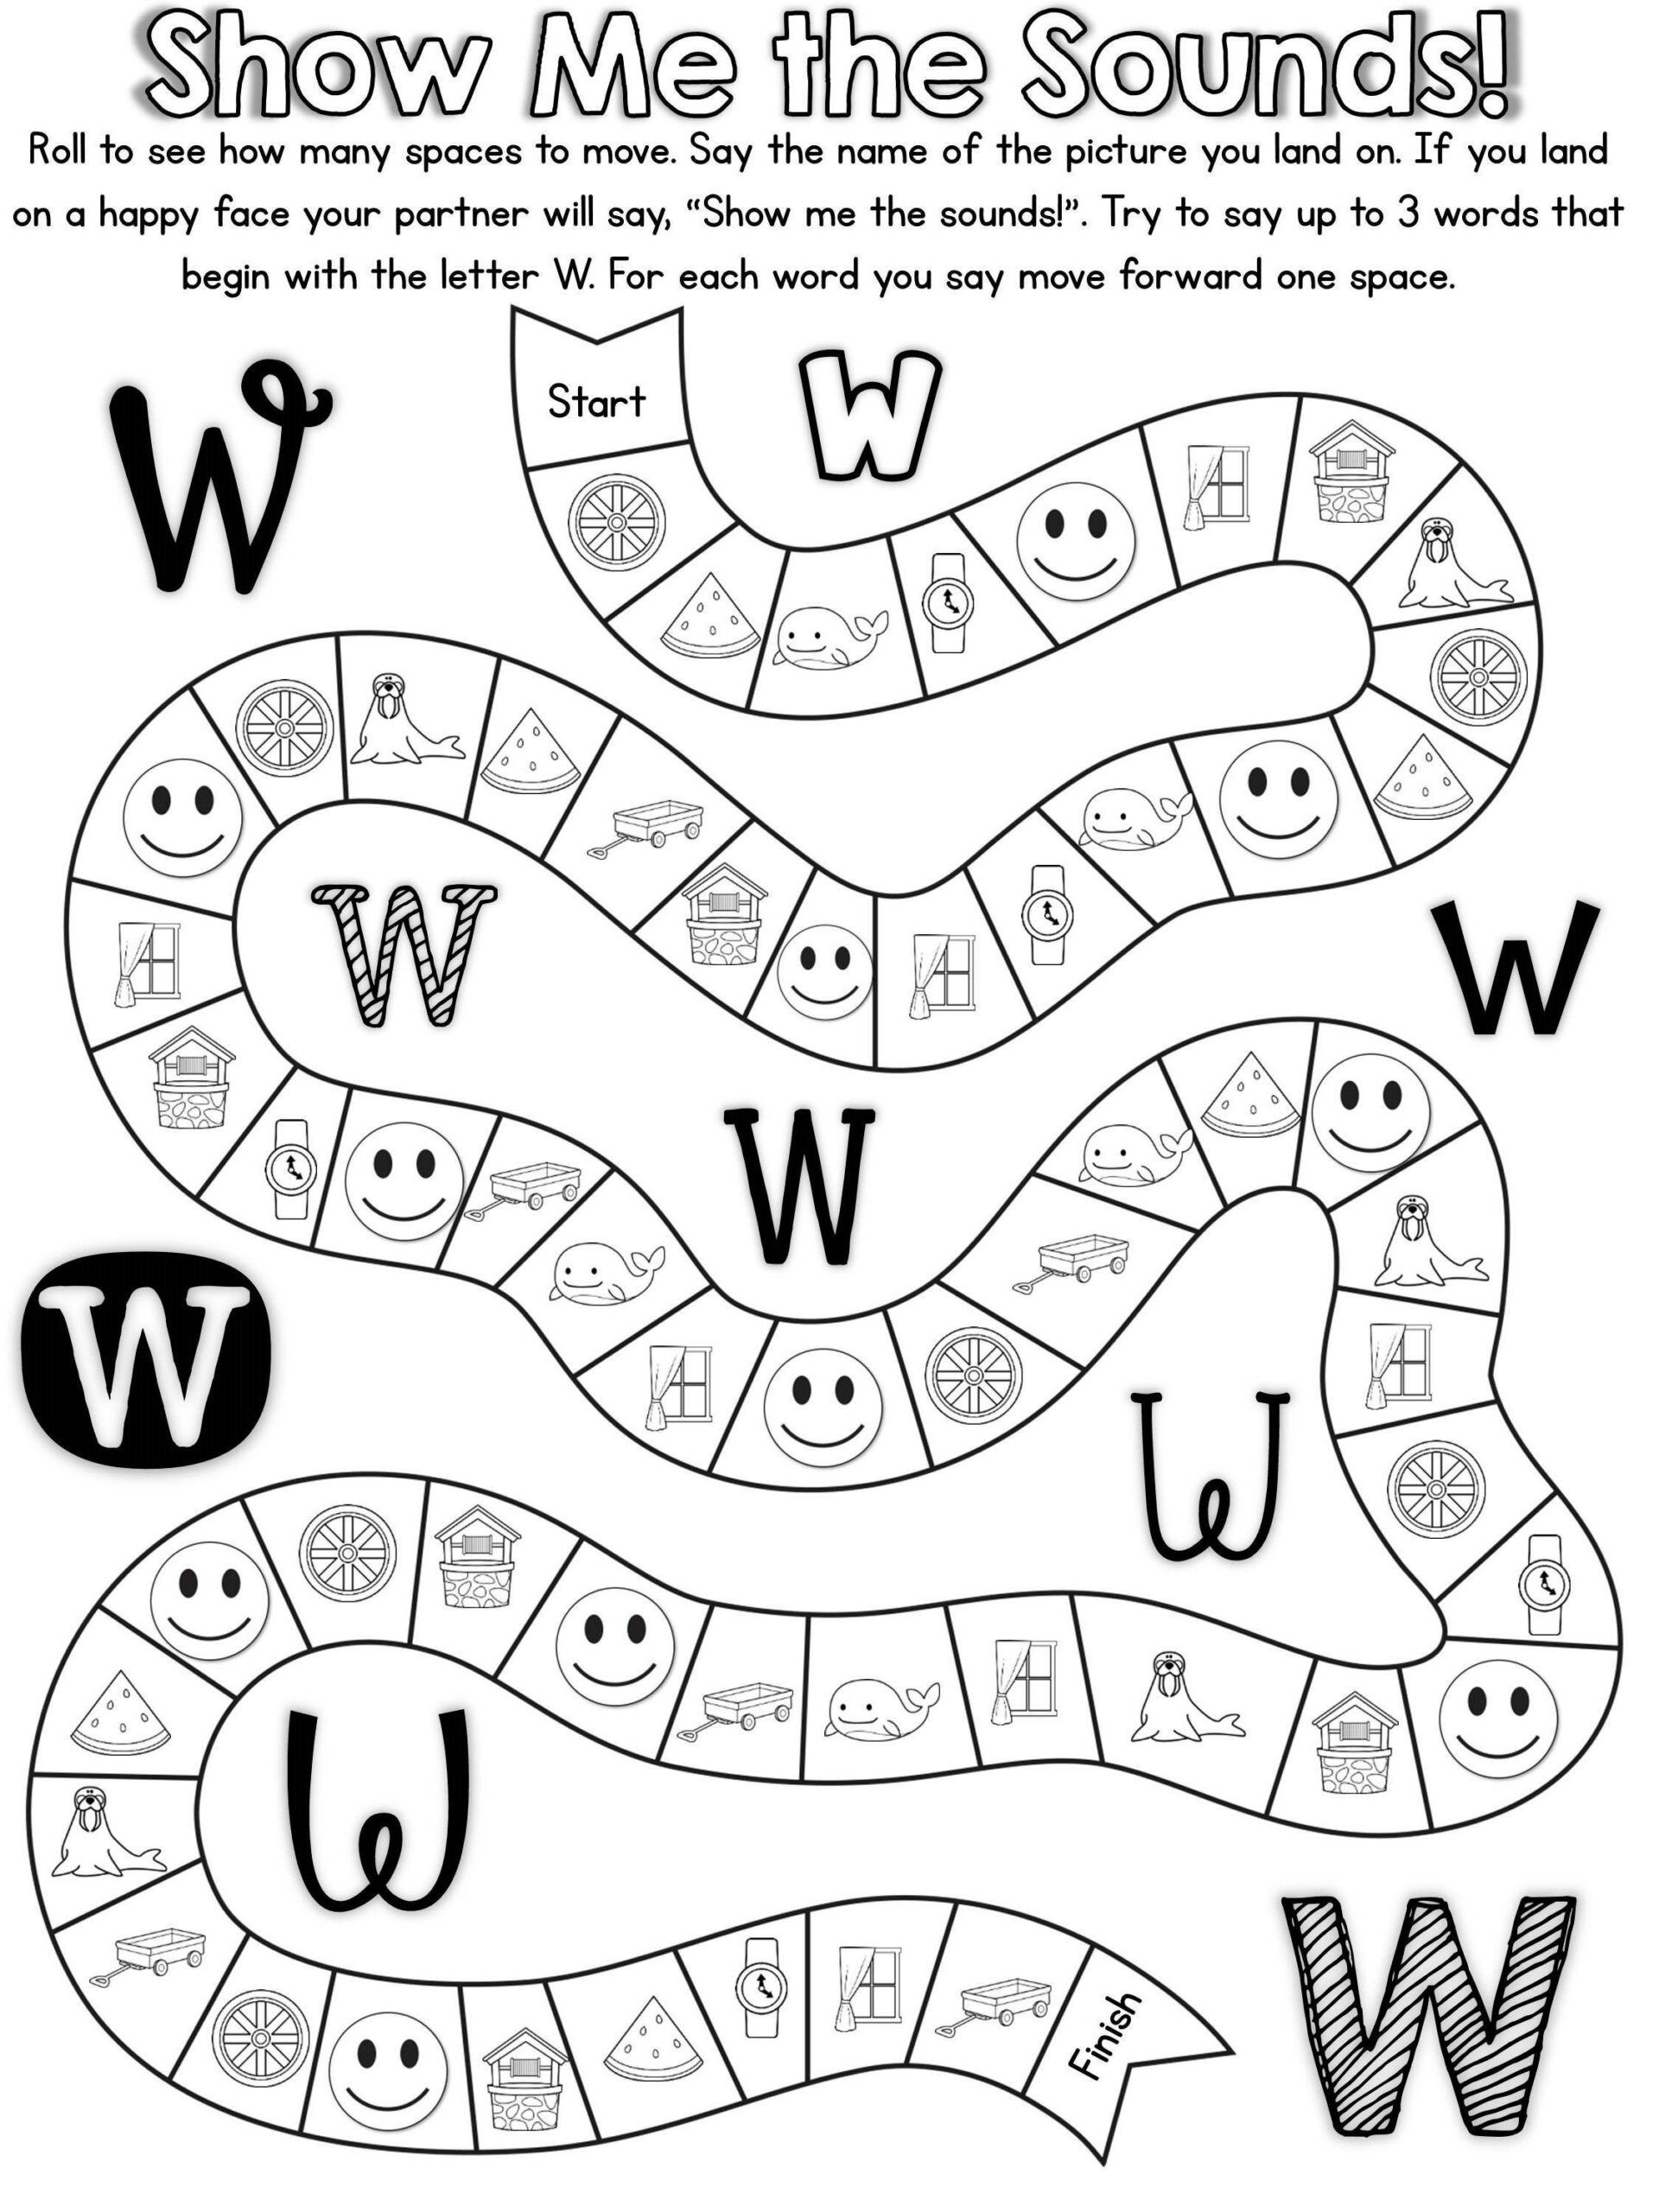 20 Ready To Print, No Prep Games To Practice The Letter W in Letter W Worksheets Twisty Noodle